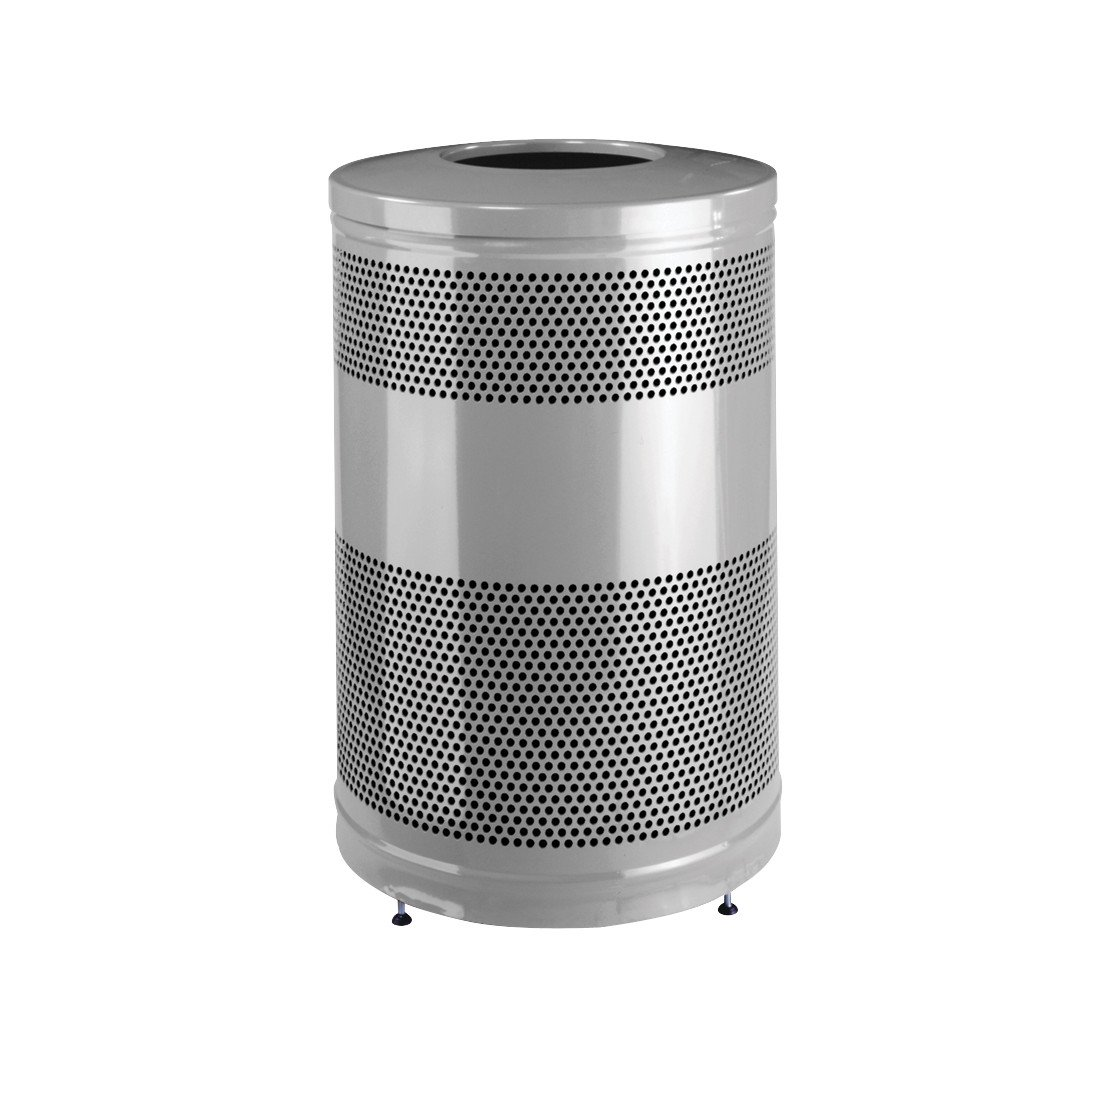 Rubbermaid Commercial Classic Trash Can, 51 Gallon, Silver Metallic, FGS55ETSMPLBK